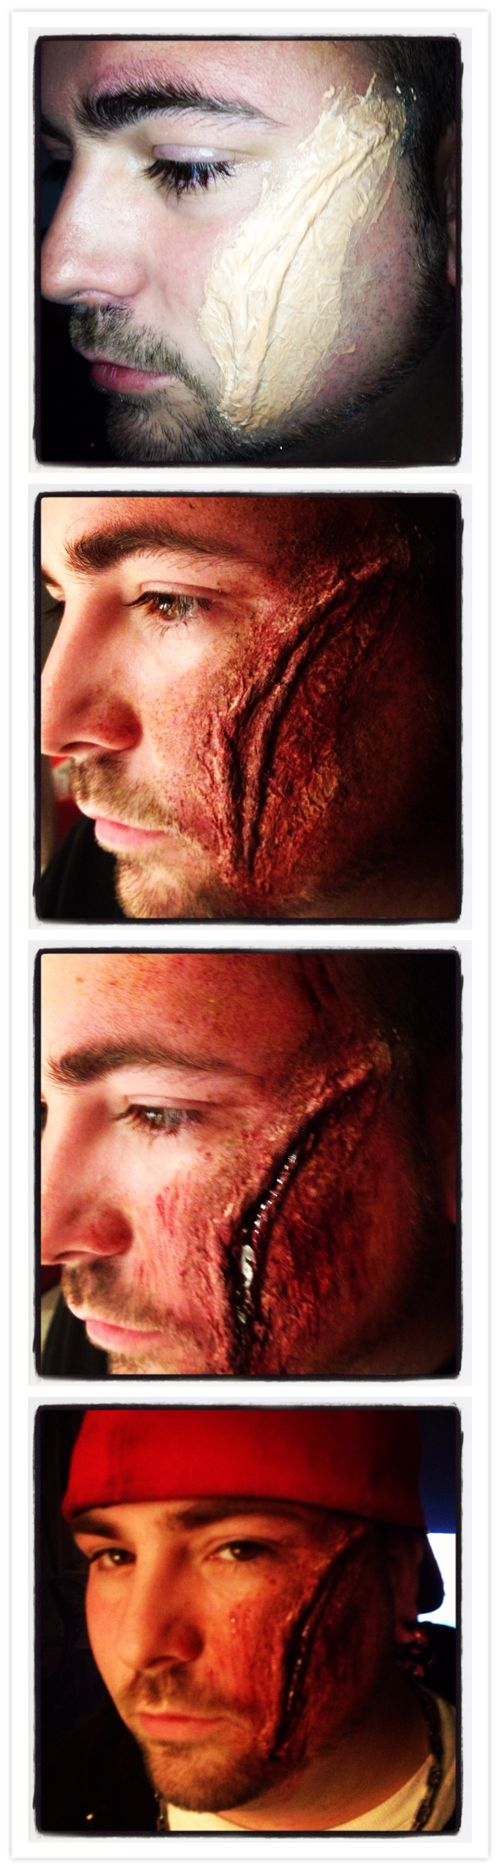 Great idea for a Halloween costume!! Use skin colored tissue paper, liquid latex, stage make-up, and a little fake blood and you've got open wounds with redness and bruising! Great for all kinds of costumes, peel back the liquid latex for rotten looking zombie flesh! :) #costumes #zombie #crafts